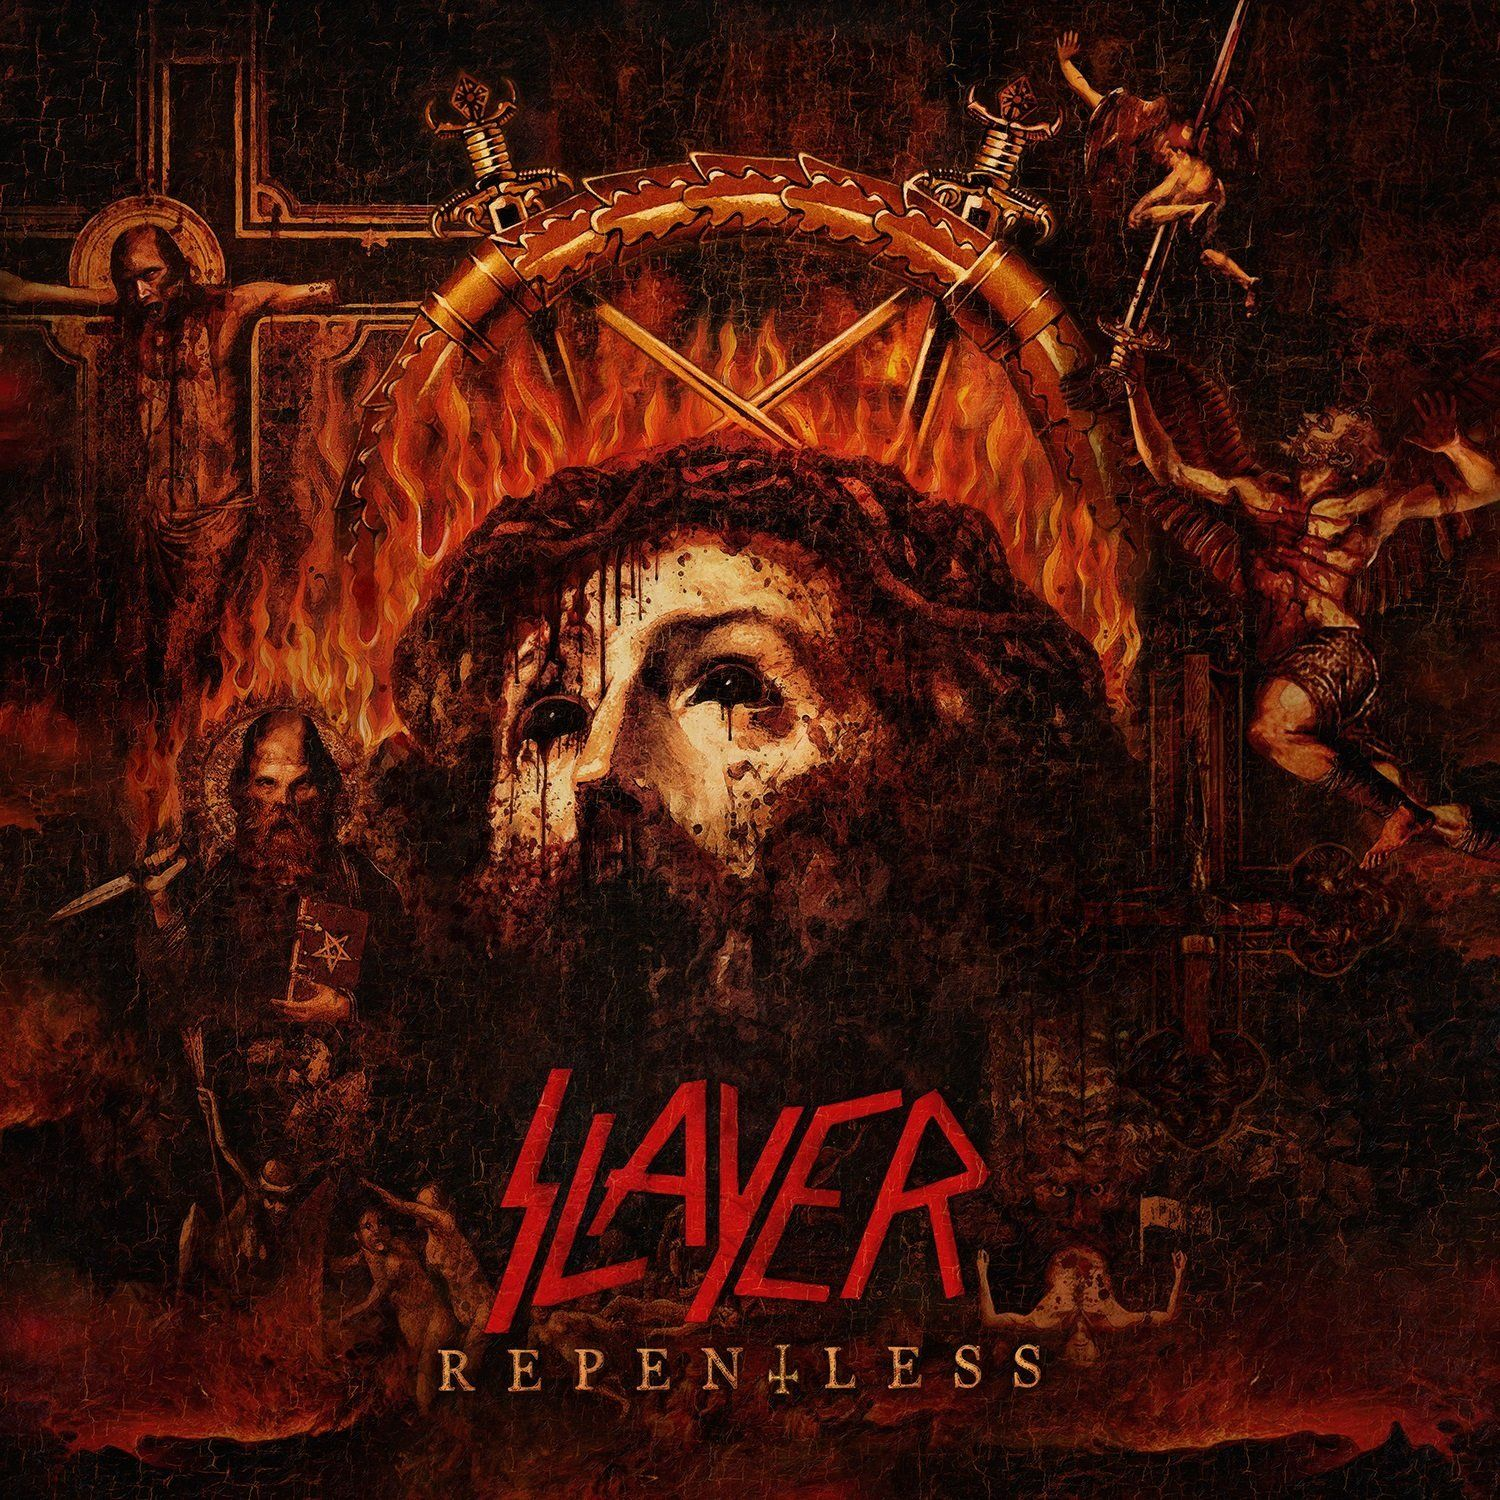 Slayer - Repentless album cover